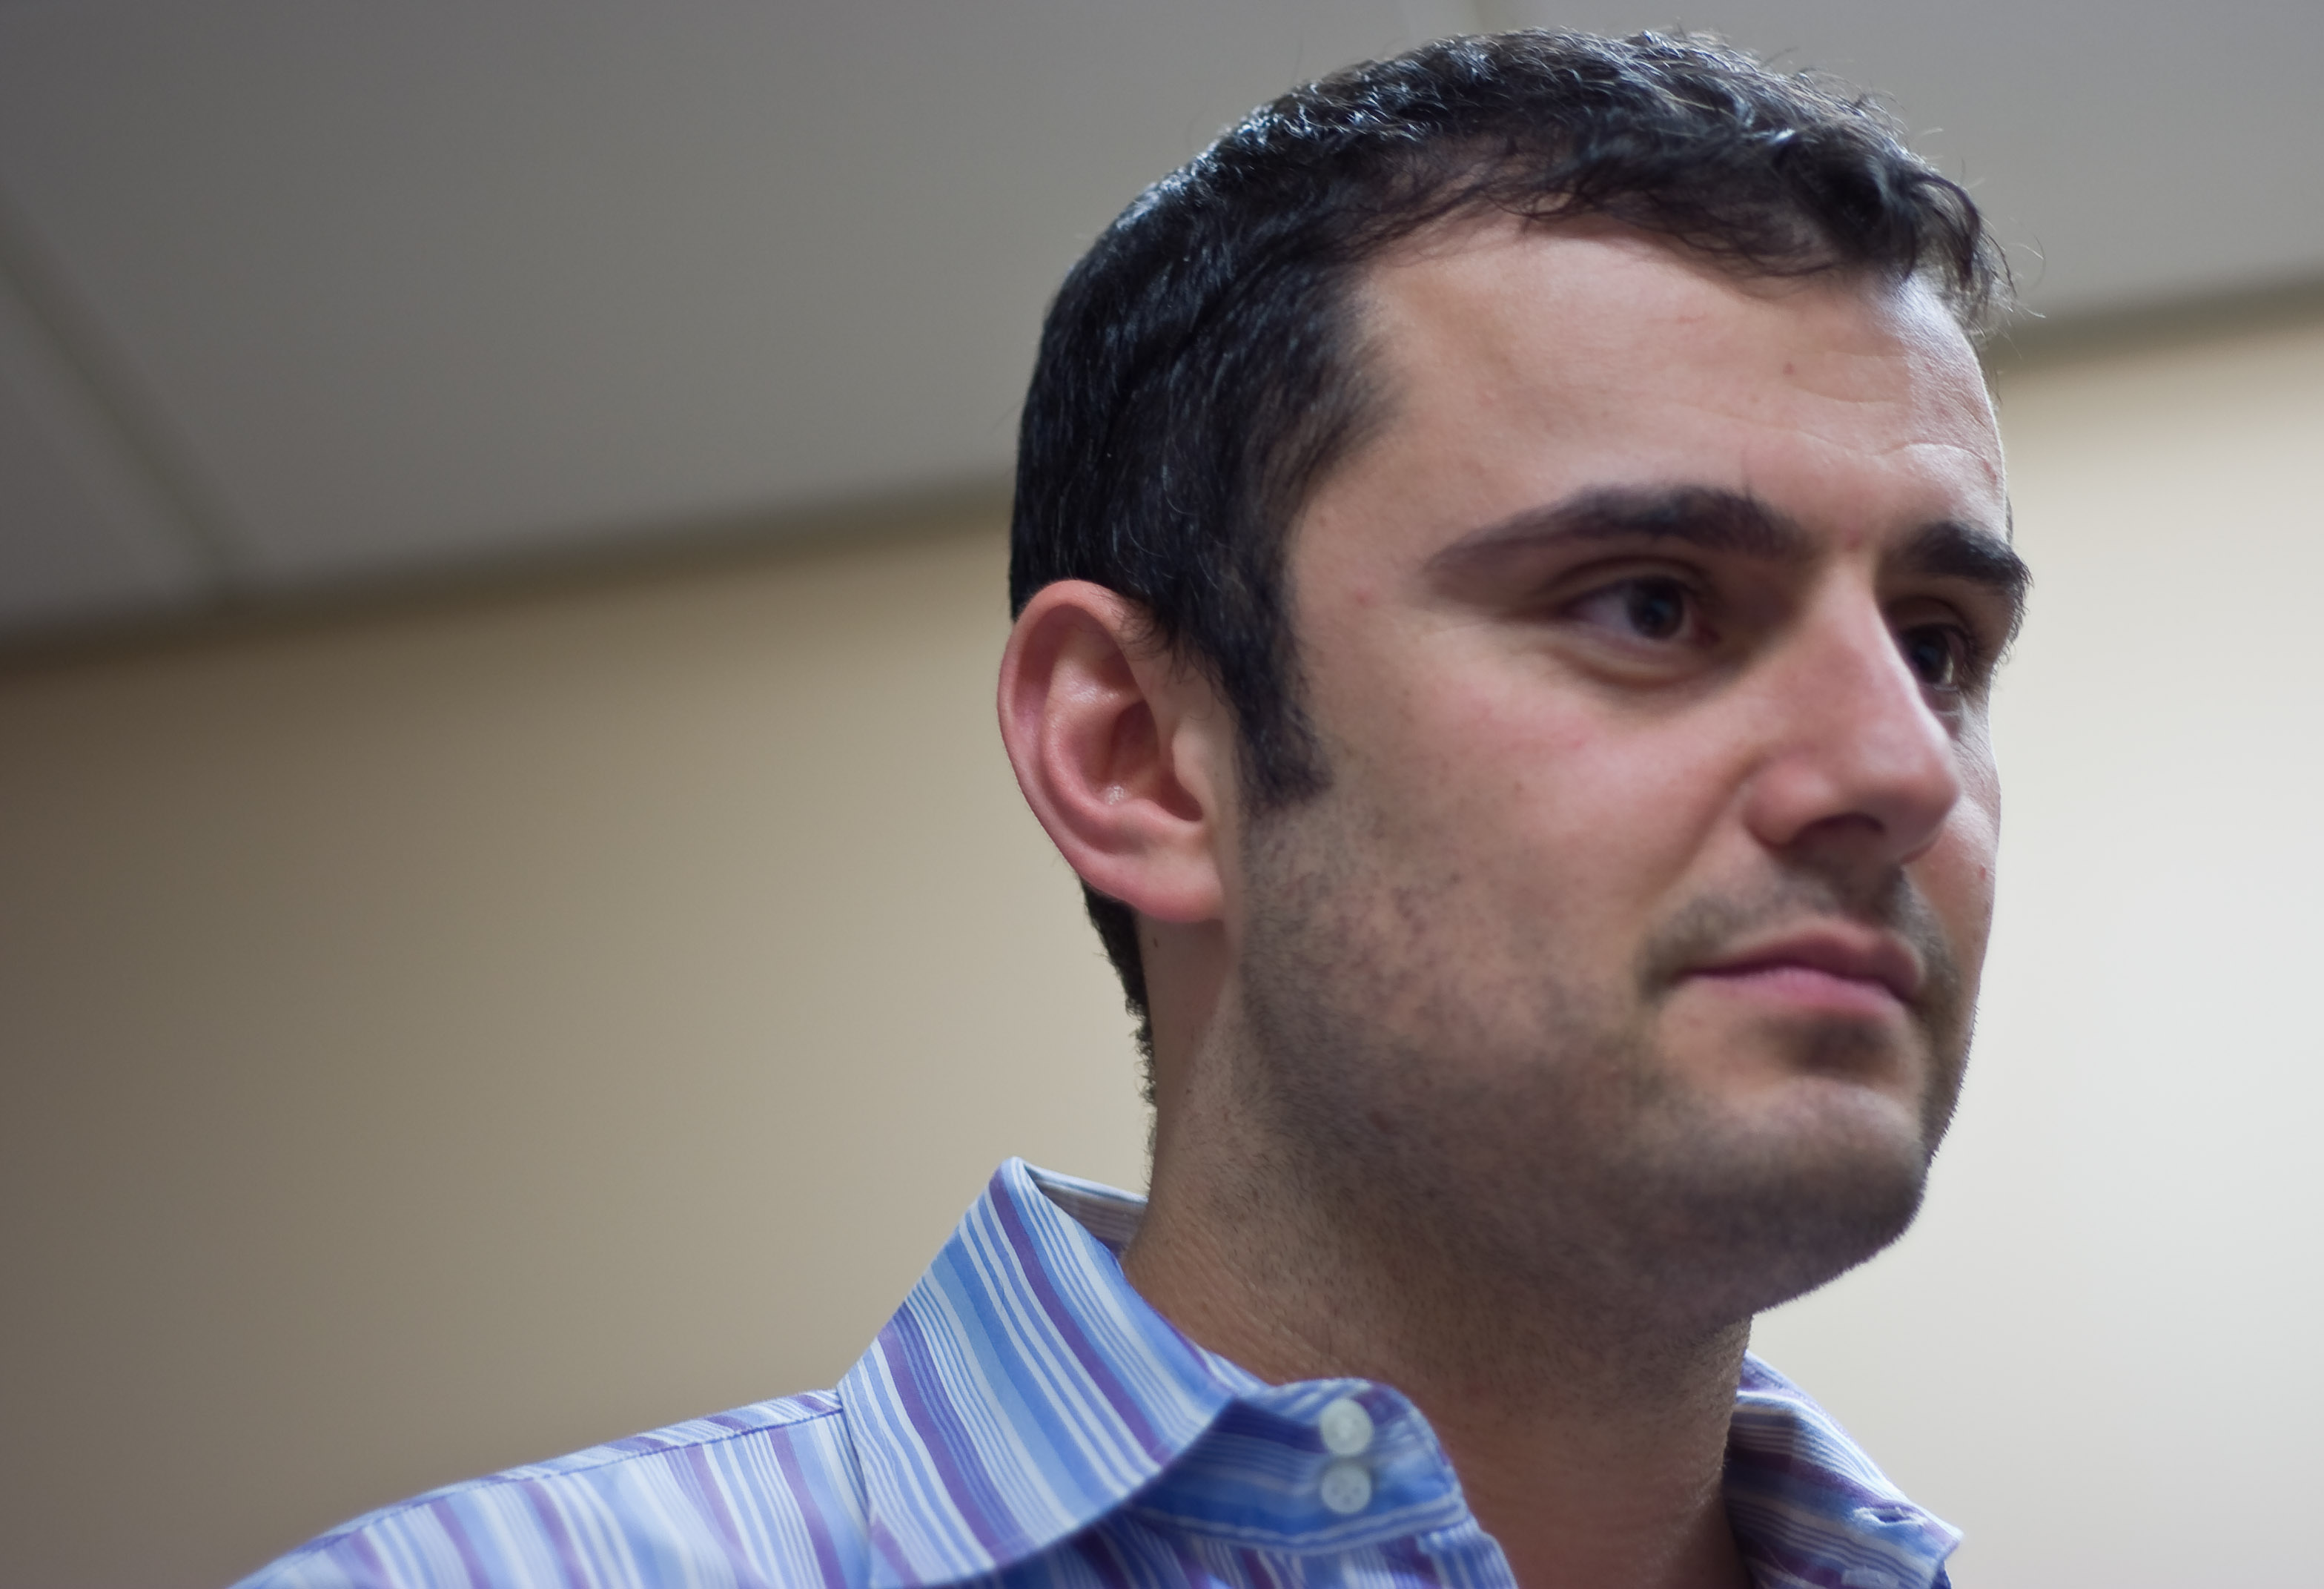 http://upload.wikimedia.org/wikipedia/commons/8/83/Gary_Vaynerchuk_by_Erik_Kastner.jpg